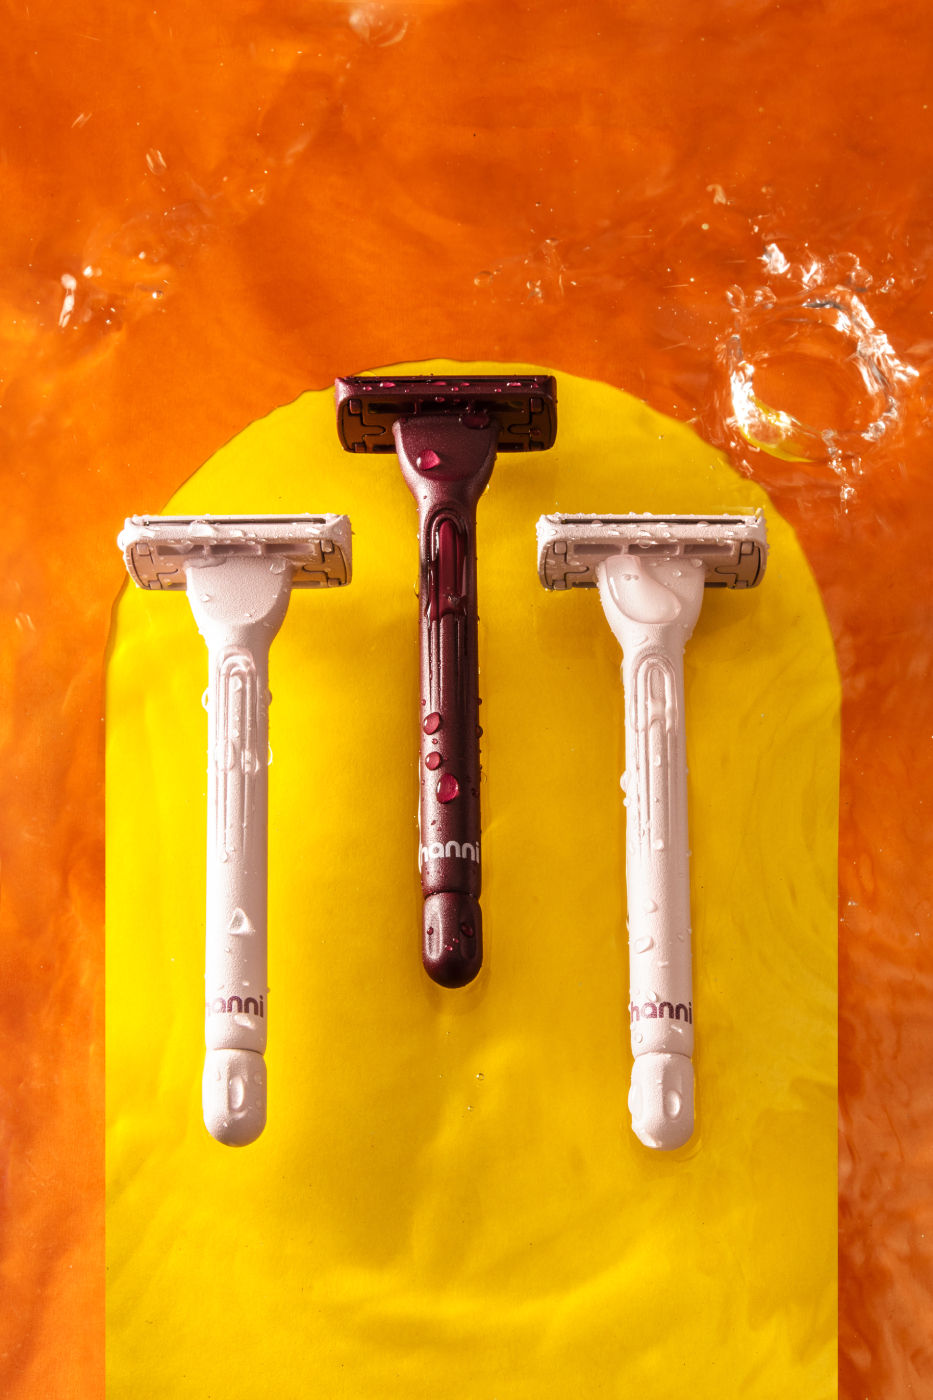 Three Hanni razors submerged in water with splashes on a orange background with a yellow arch shot by Katelin Kinney